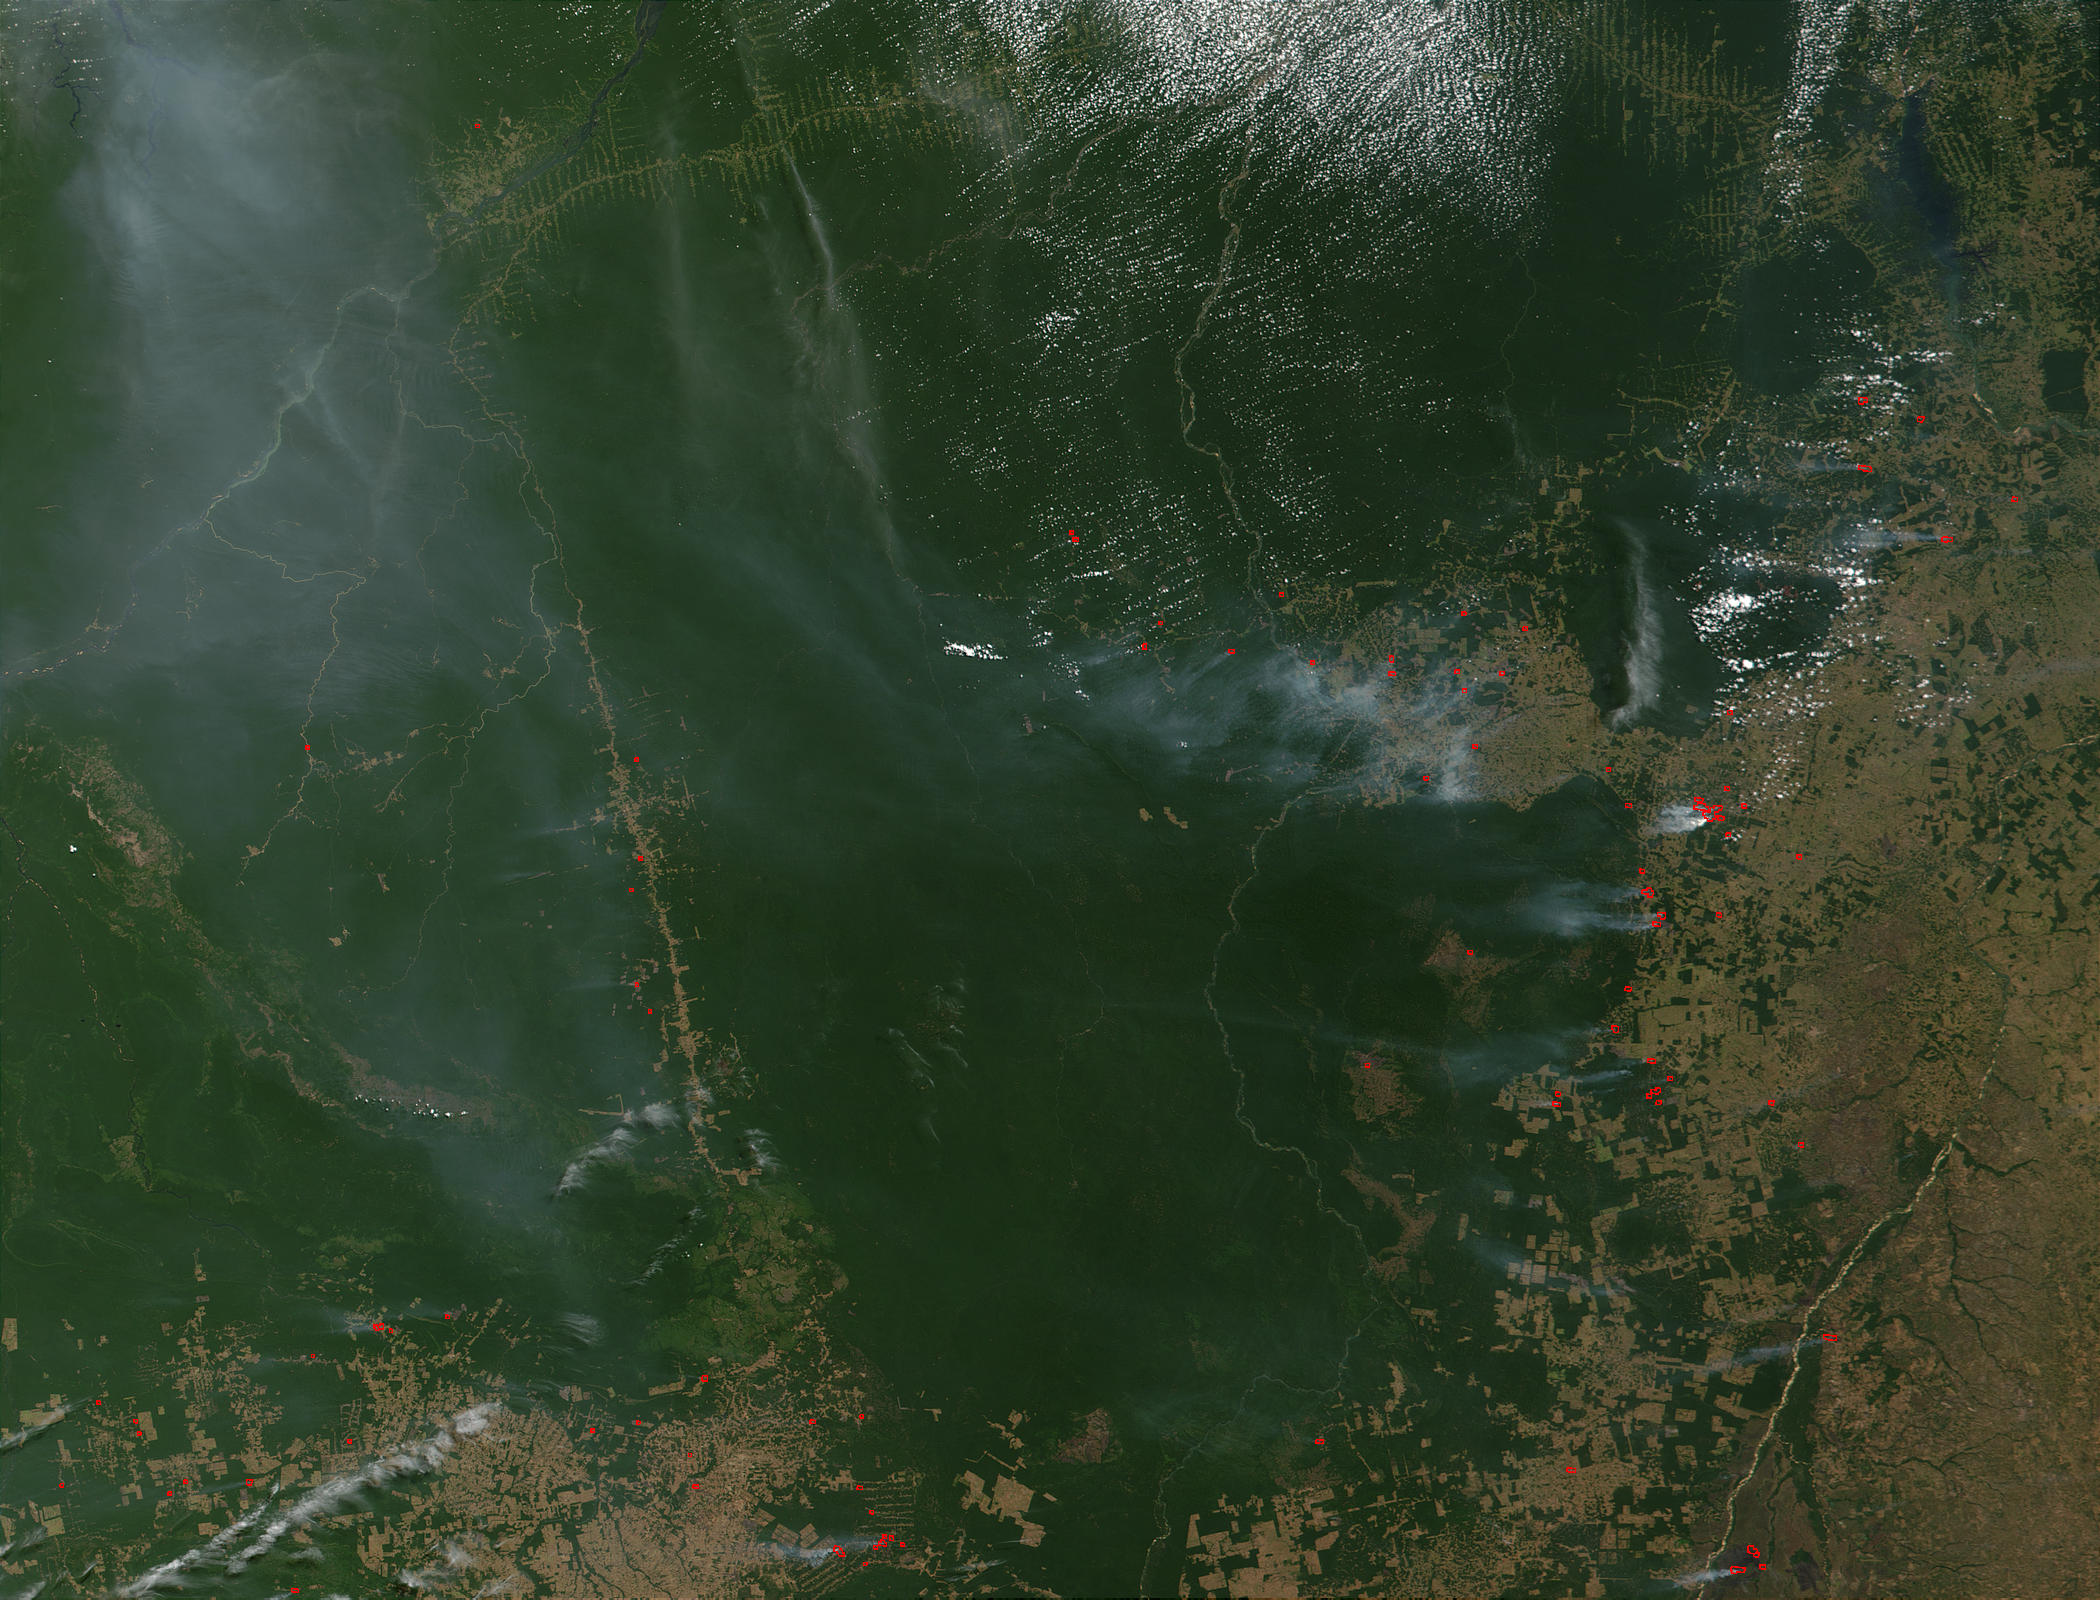 Fires and deforestation in Para state, Brazil - related image preview